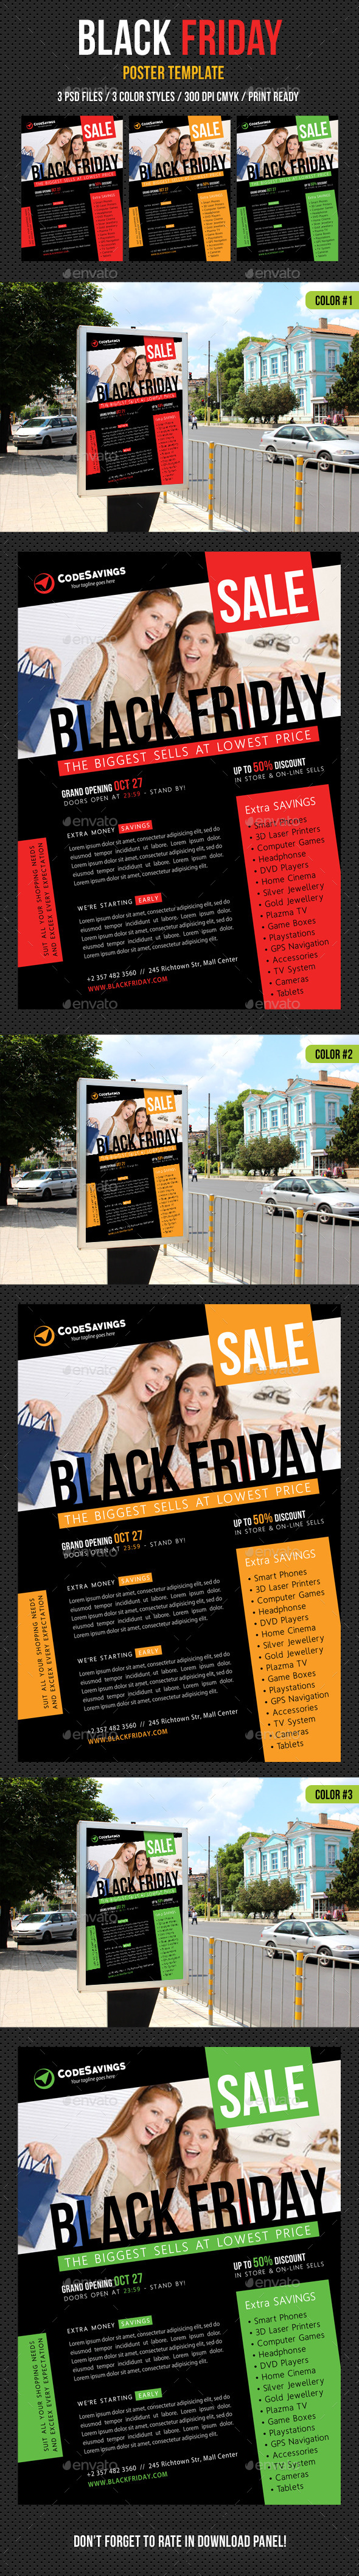 Black Friday Poster Template V03 - Signage Print Templates